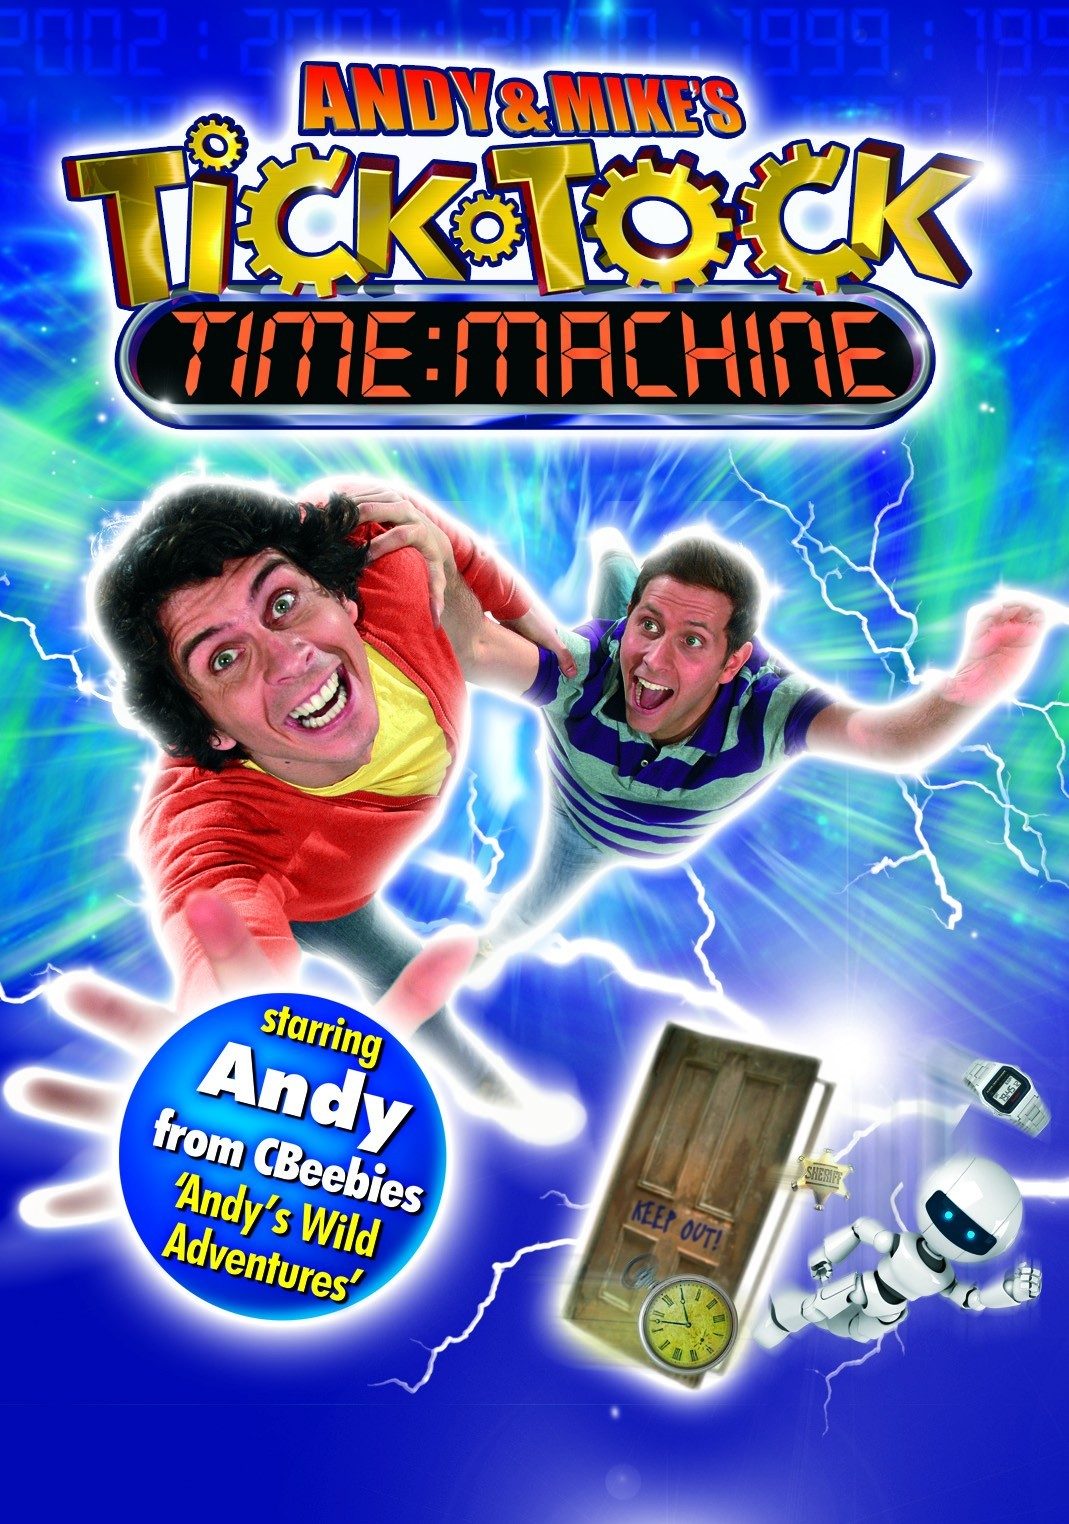 Tick tock – time machine experience for toddler audience at Theatre Severn.